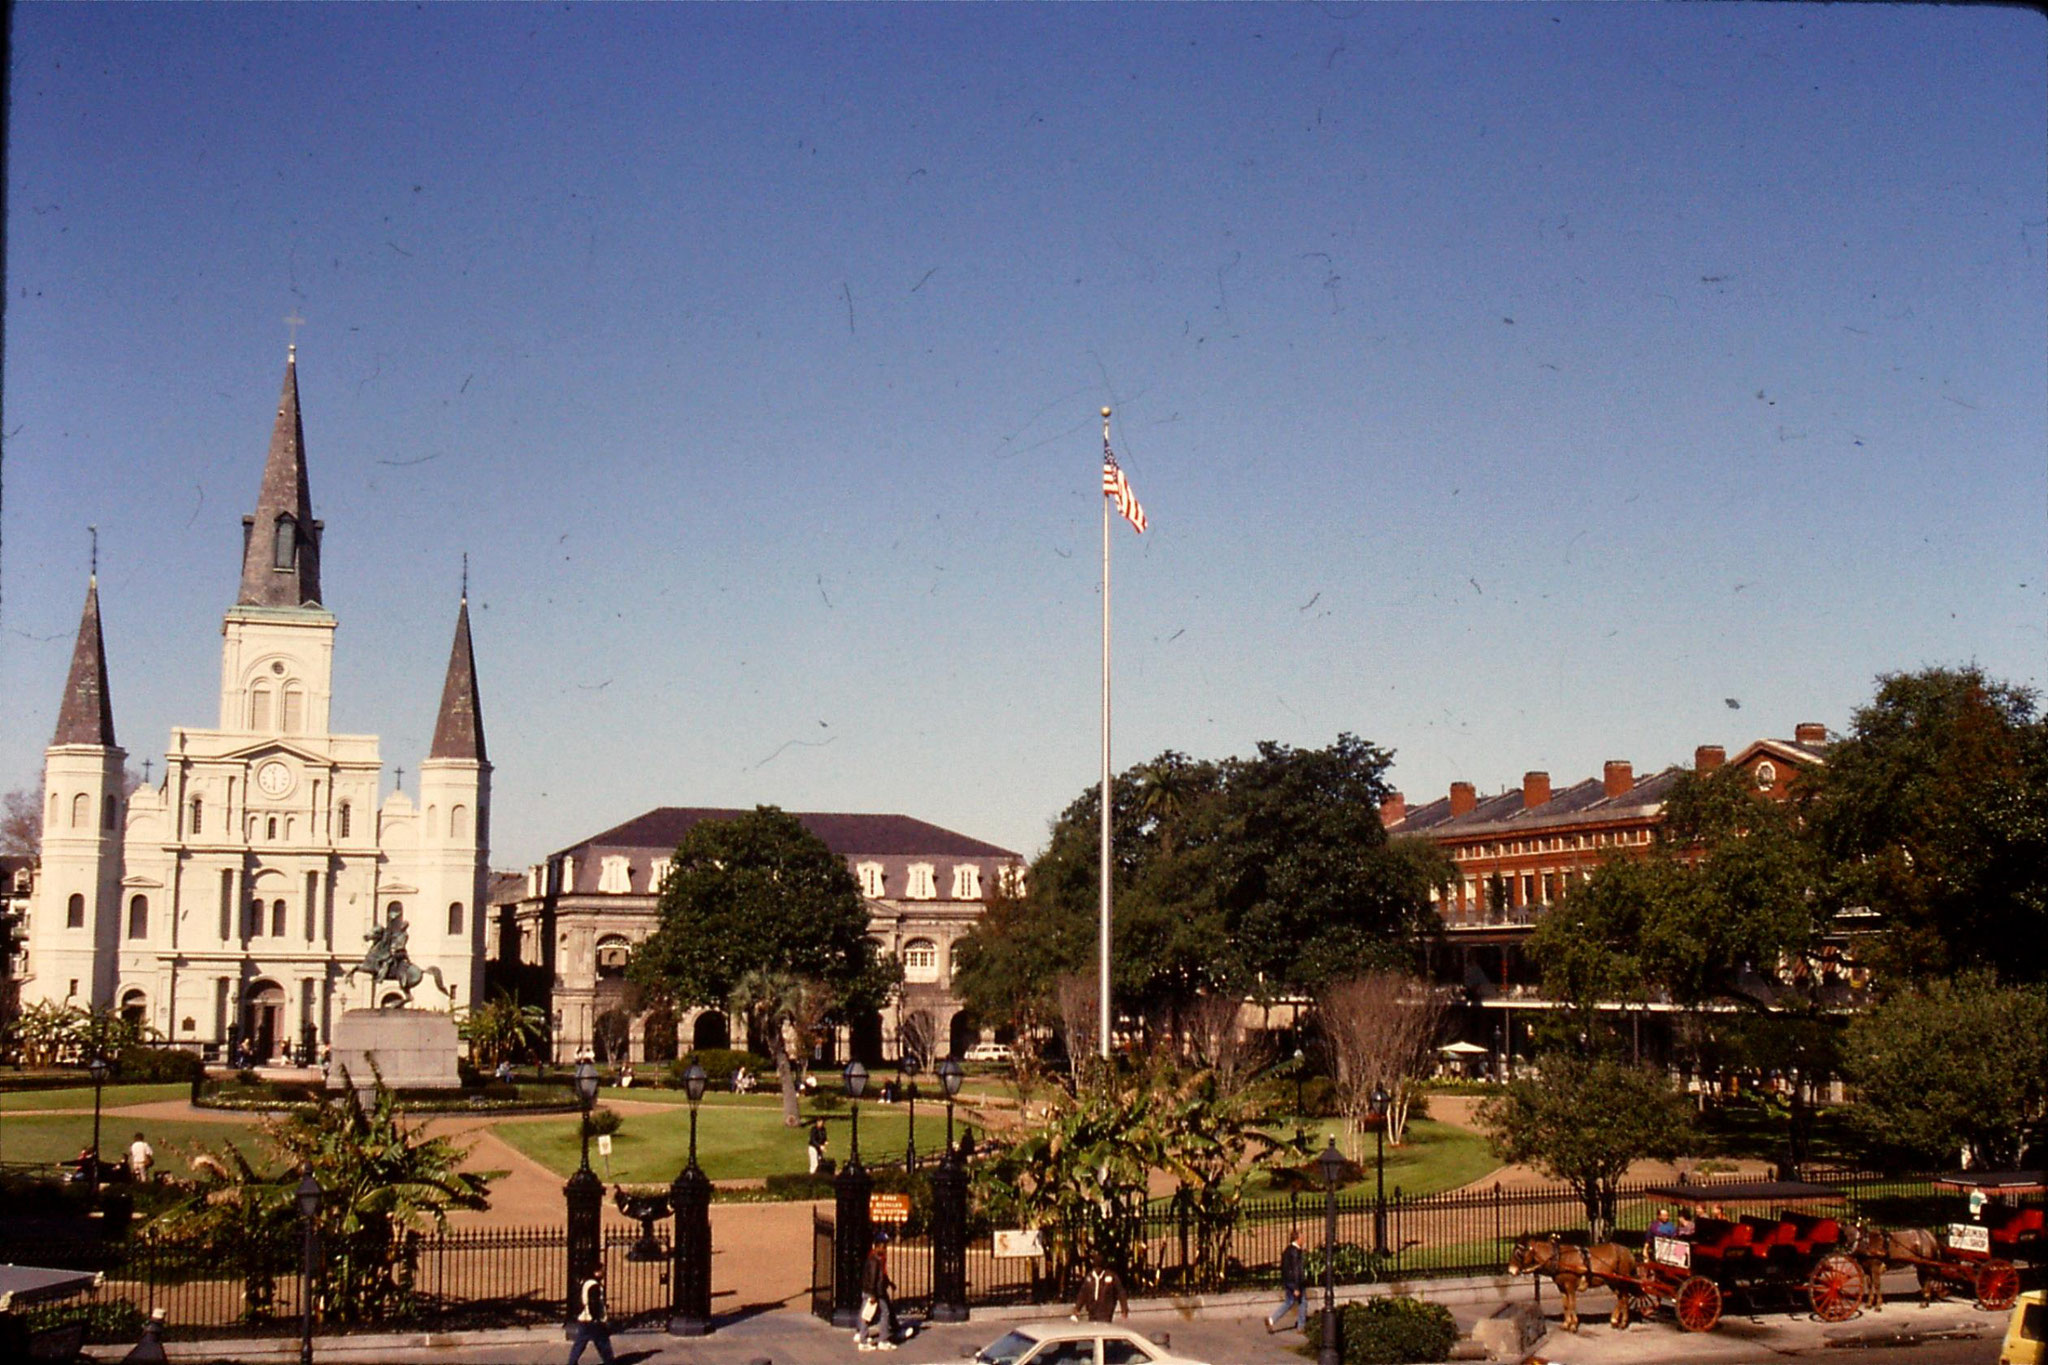 16/1/1991: 8: Old Quarter of New Orleans